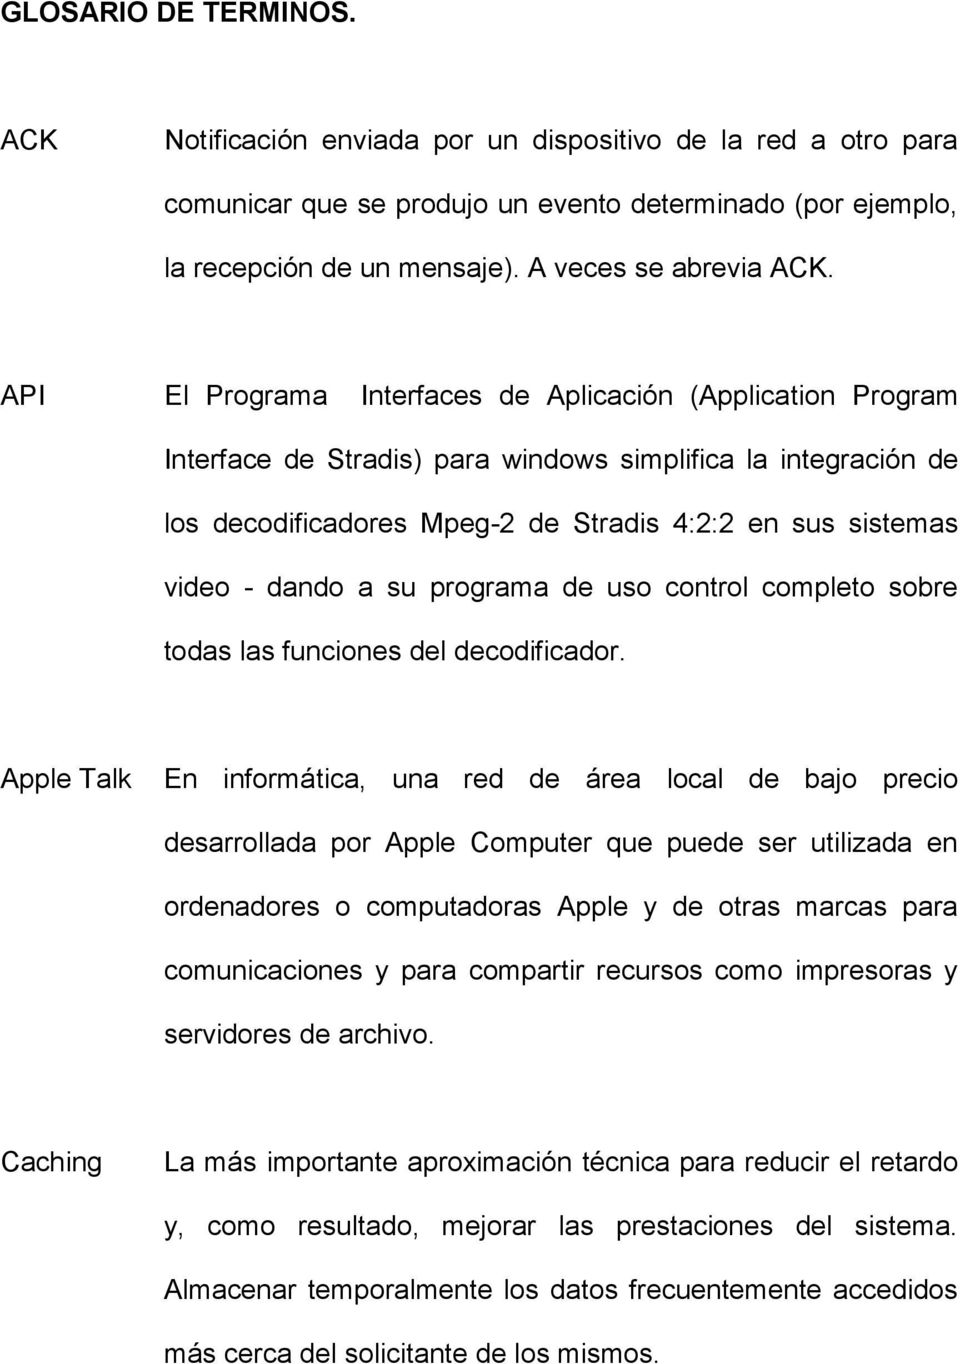 API El Programa Interfaces de Aplicación (Application Program Interface de Stradis) para windows simplifica la integración de los decodificadores Mpeg-2 de Stradis 4:2:2 en sus sistemas video - dando